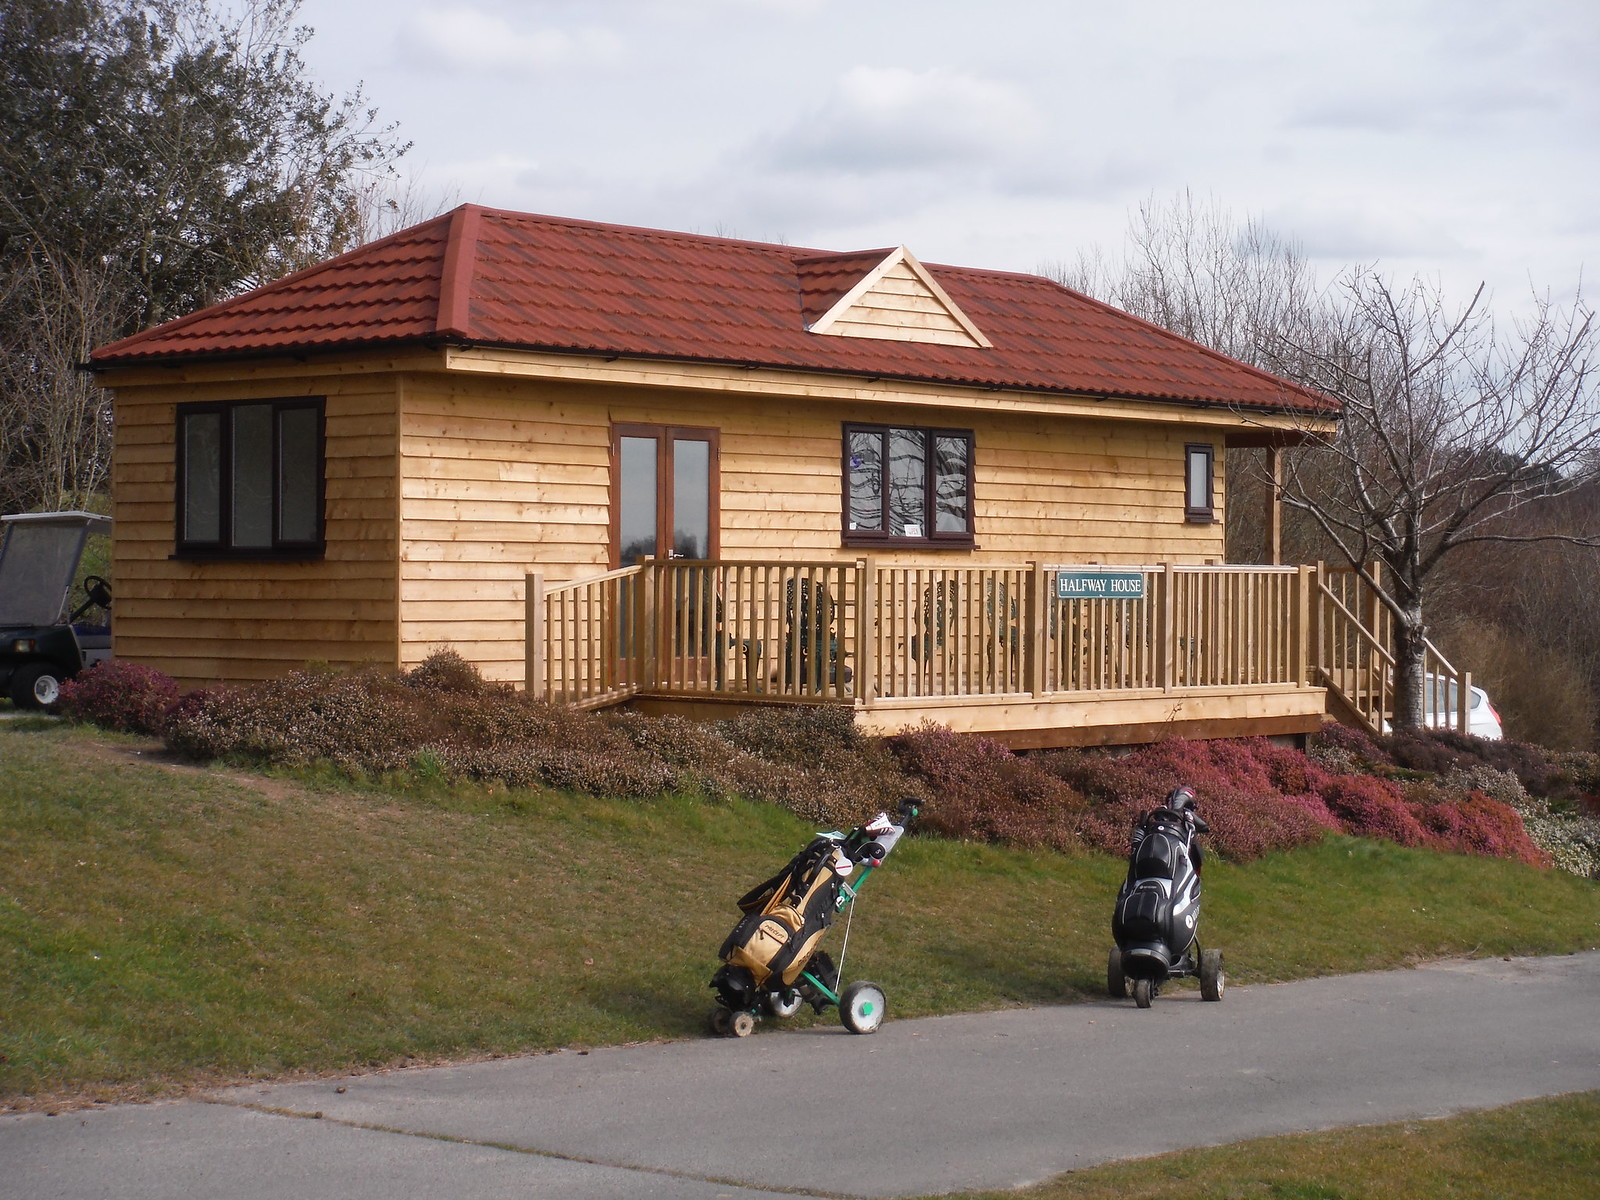 The Halfway House, East Sussex National Golf Course SWC Walk 262 Uckfield to Buxted